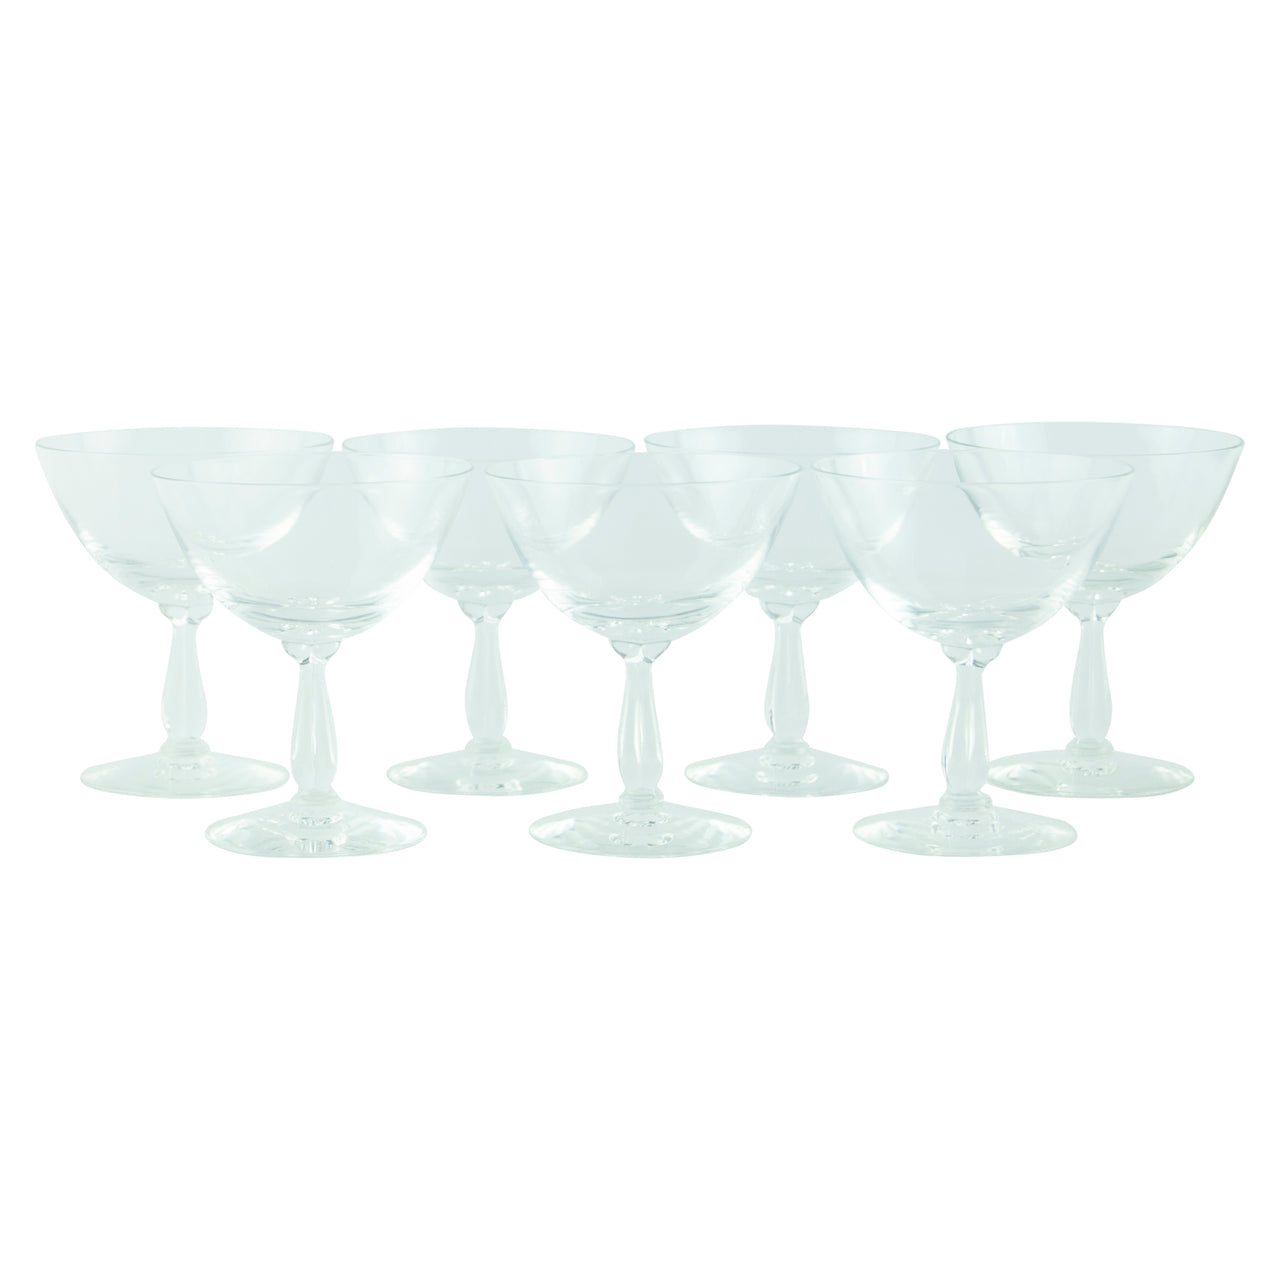 Fostoria Crystal Rhapsody Coupe Glasses | The Hour Vintage